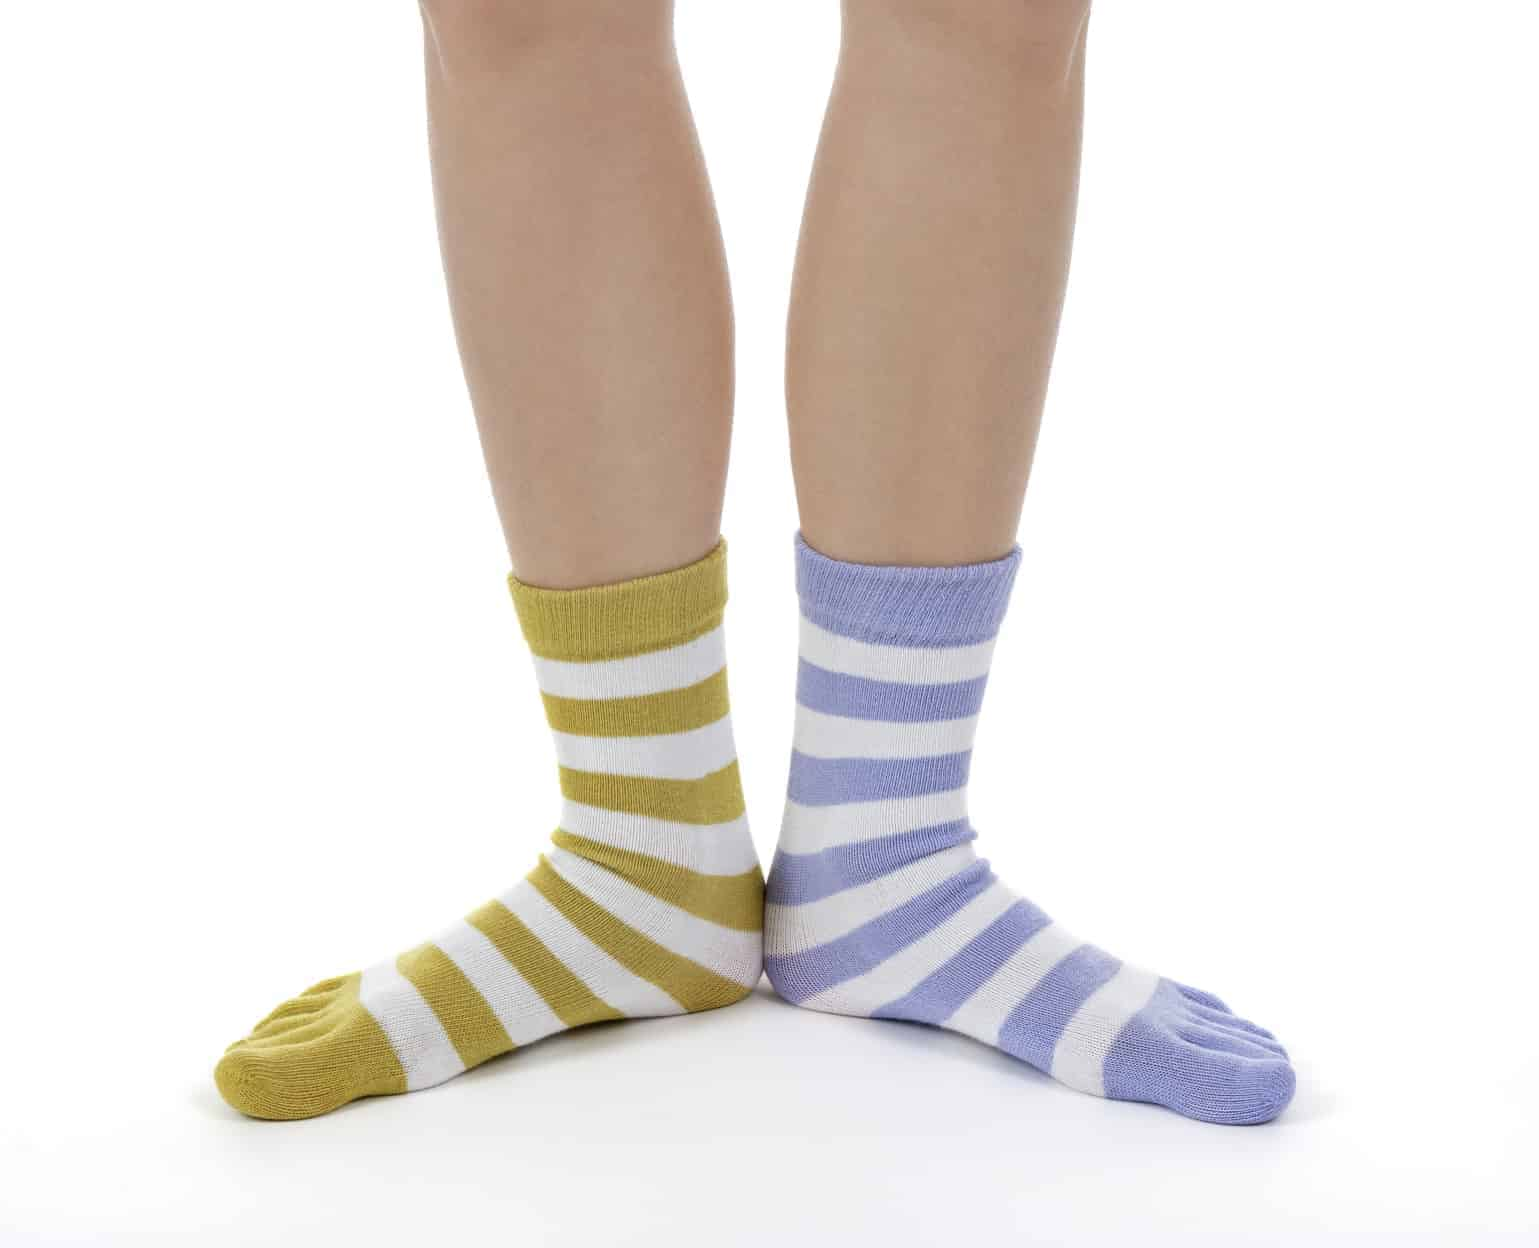 Why Should You Find the Best Source of Socks?